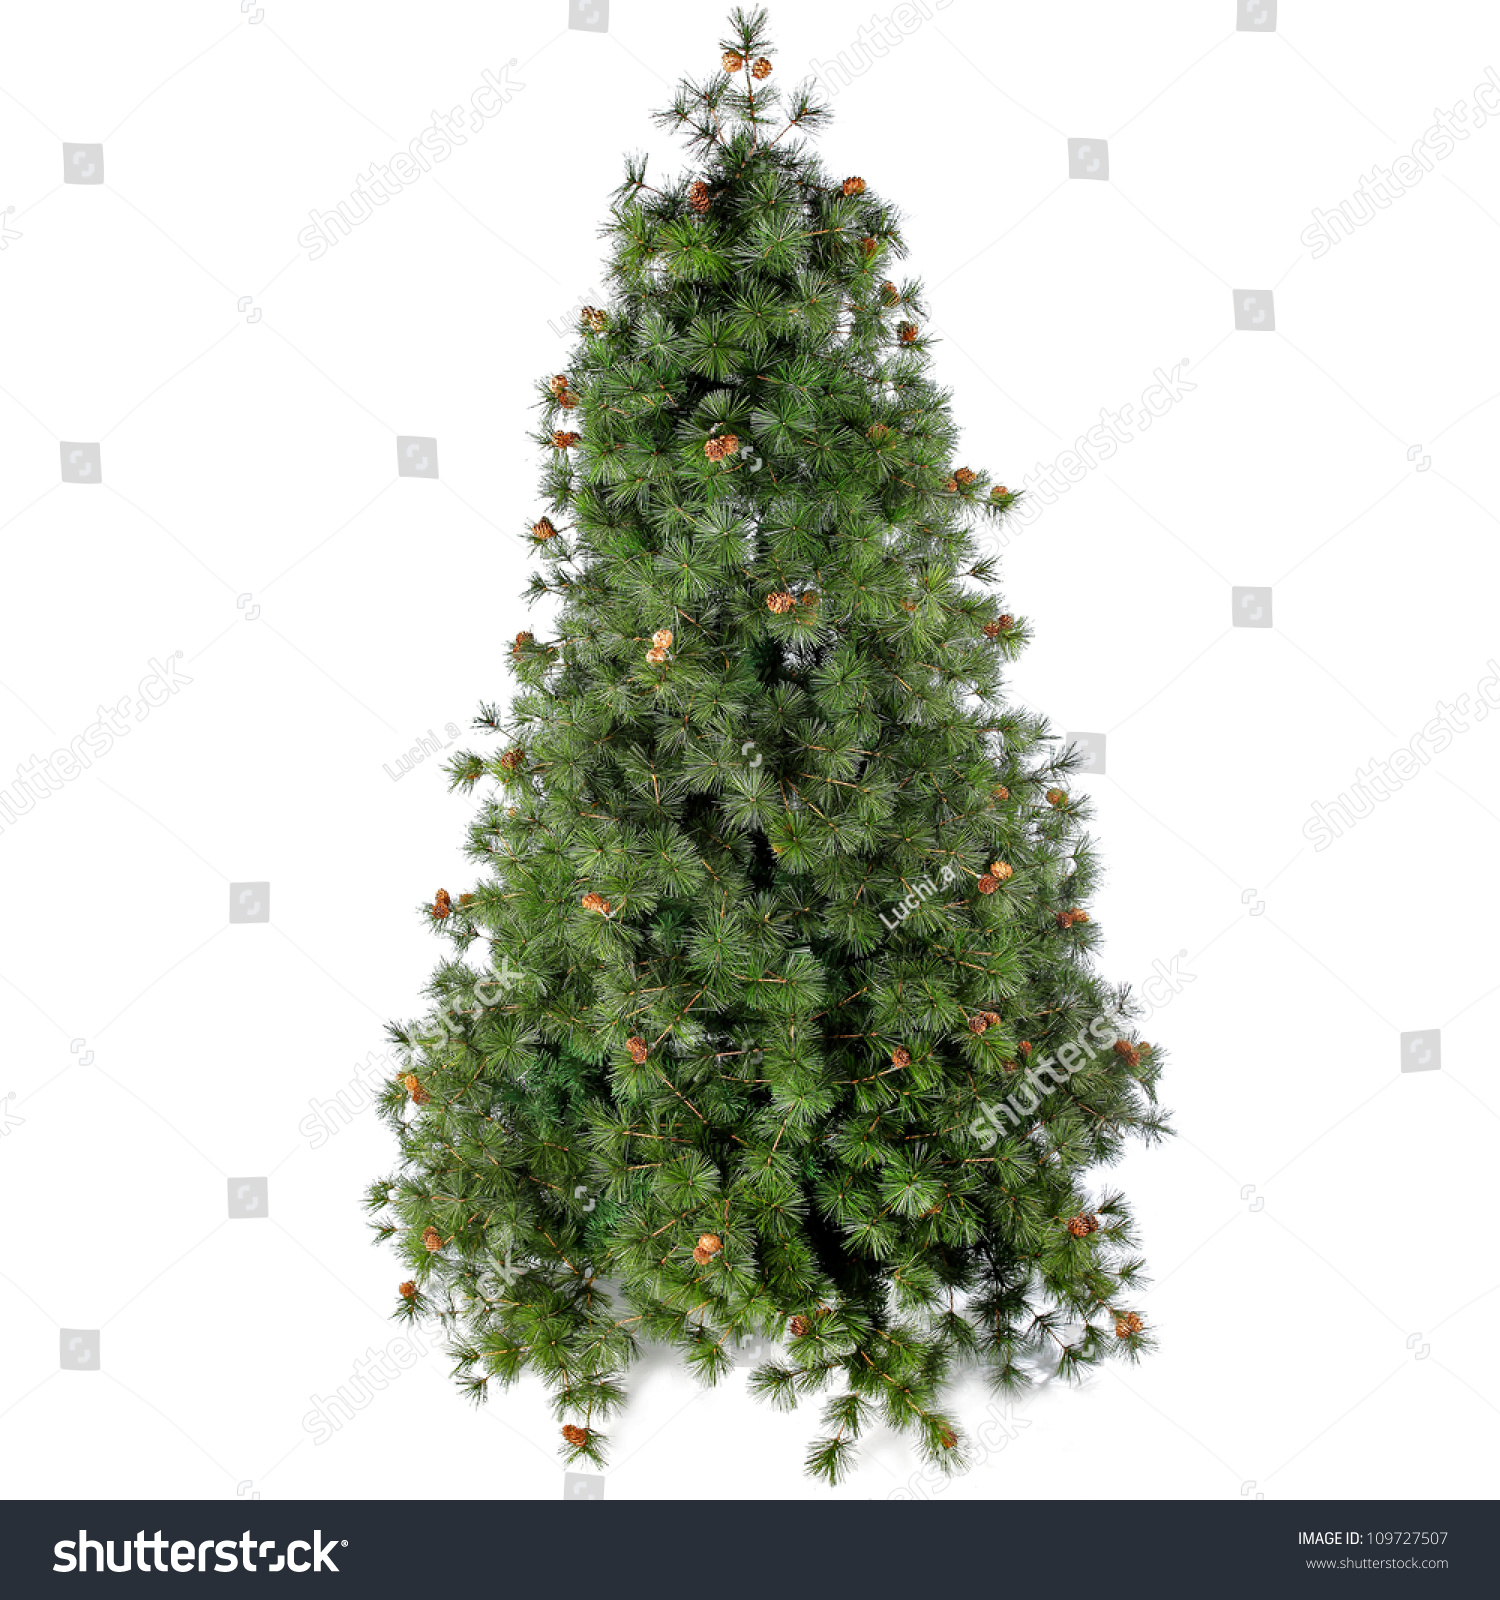 Fir tree for Christmas on white background #109727507